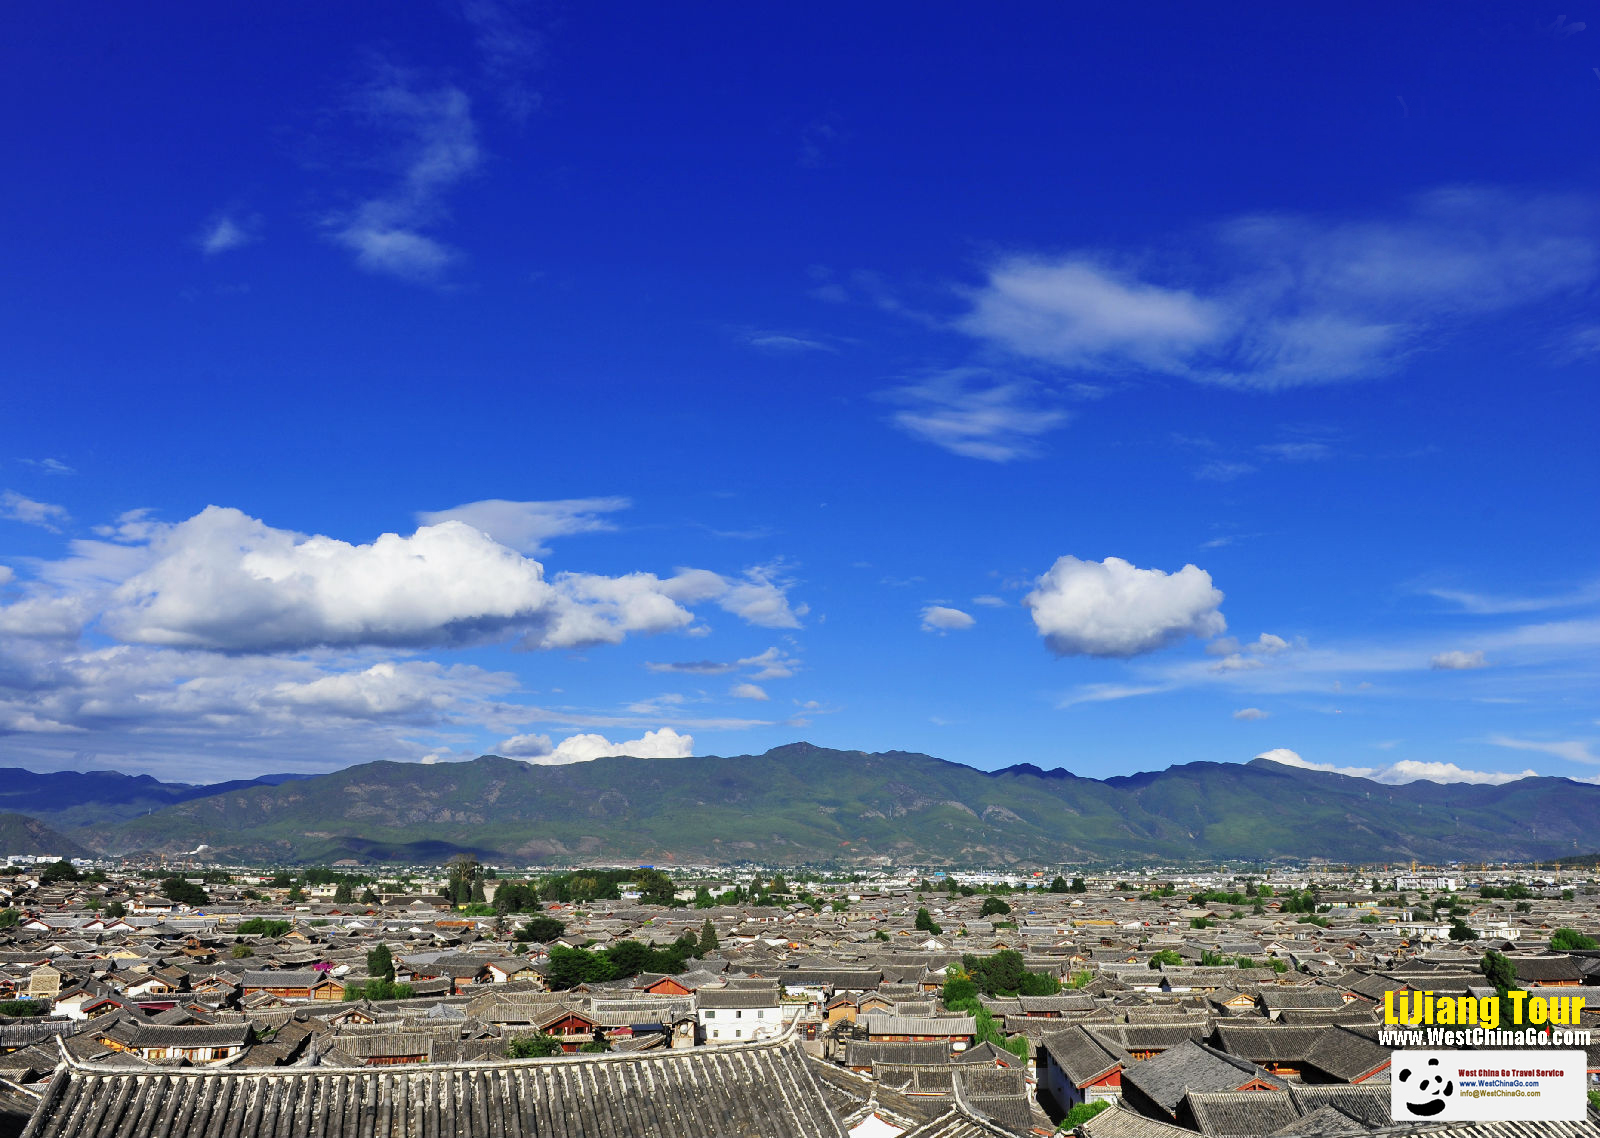 yunnan LiJiang Tour, Travel Guide